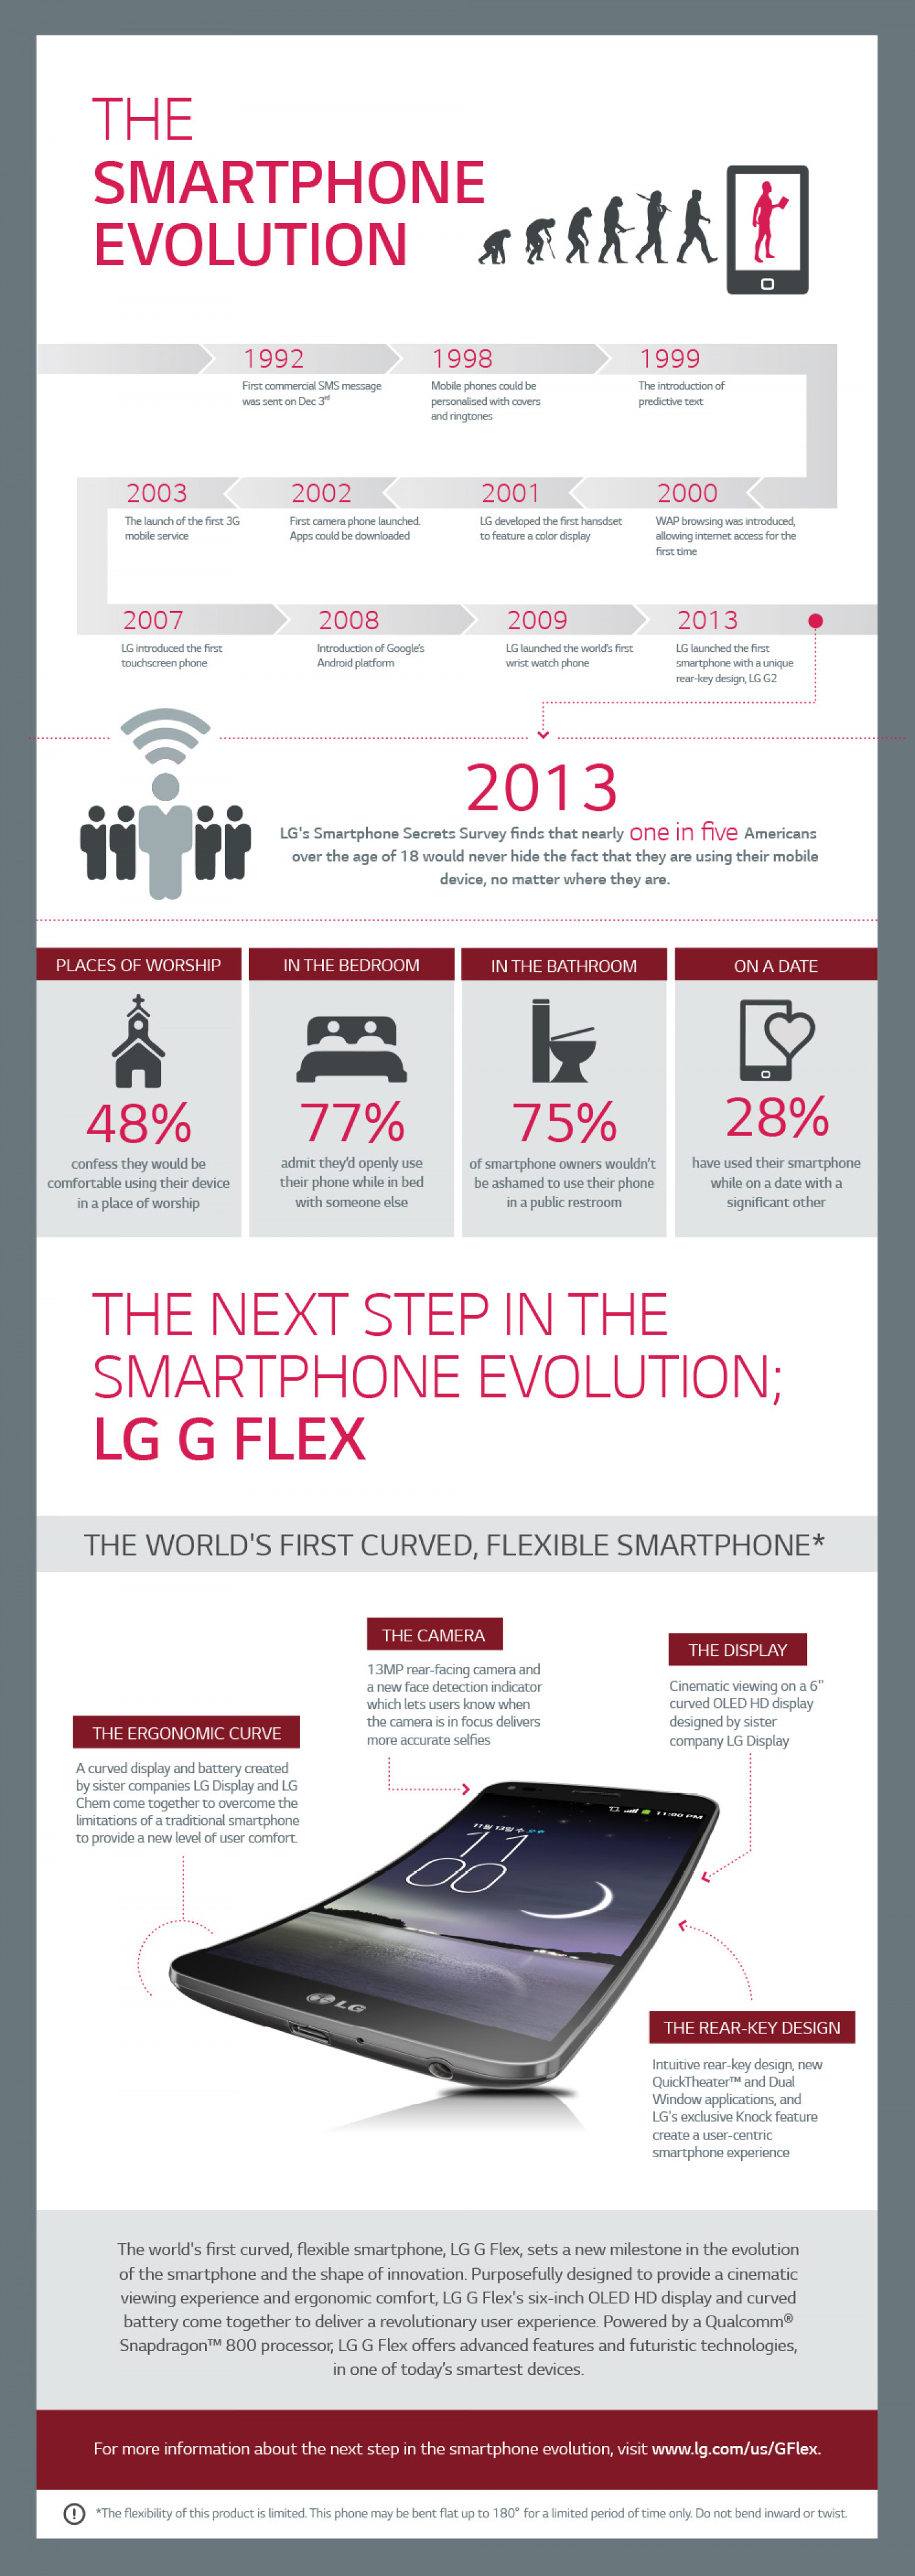 The Smartphone Evolution Infographic